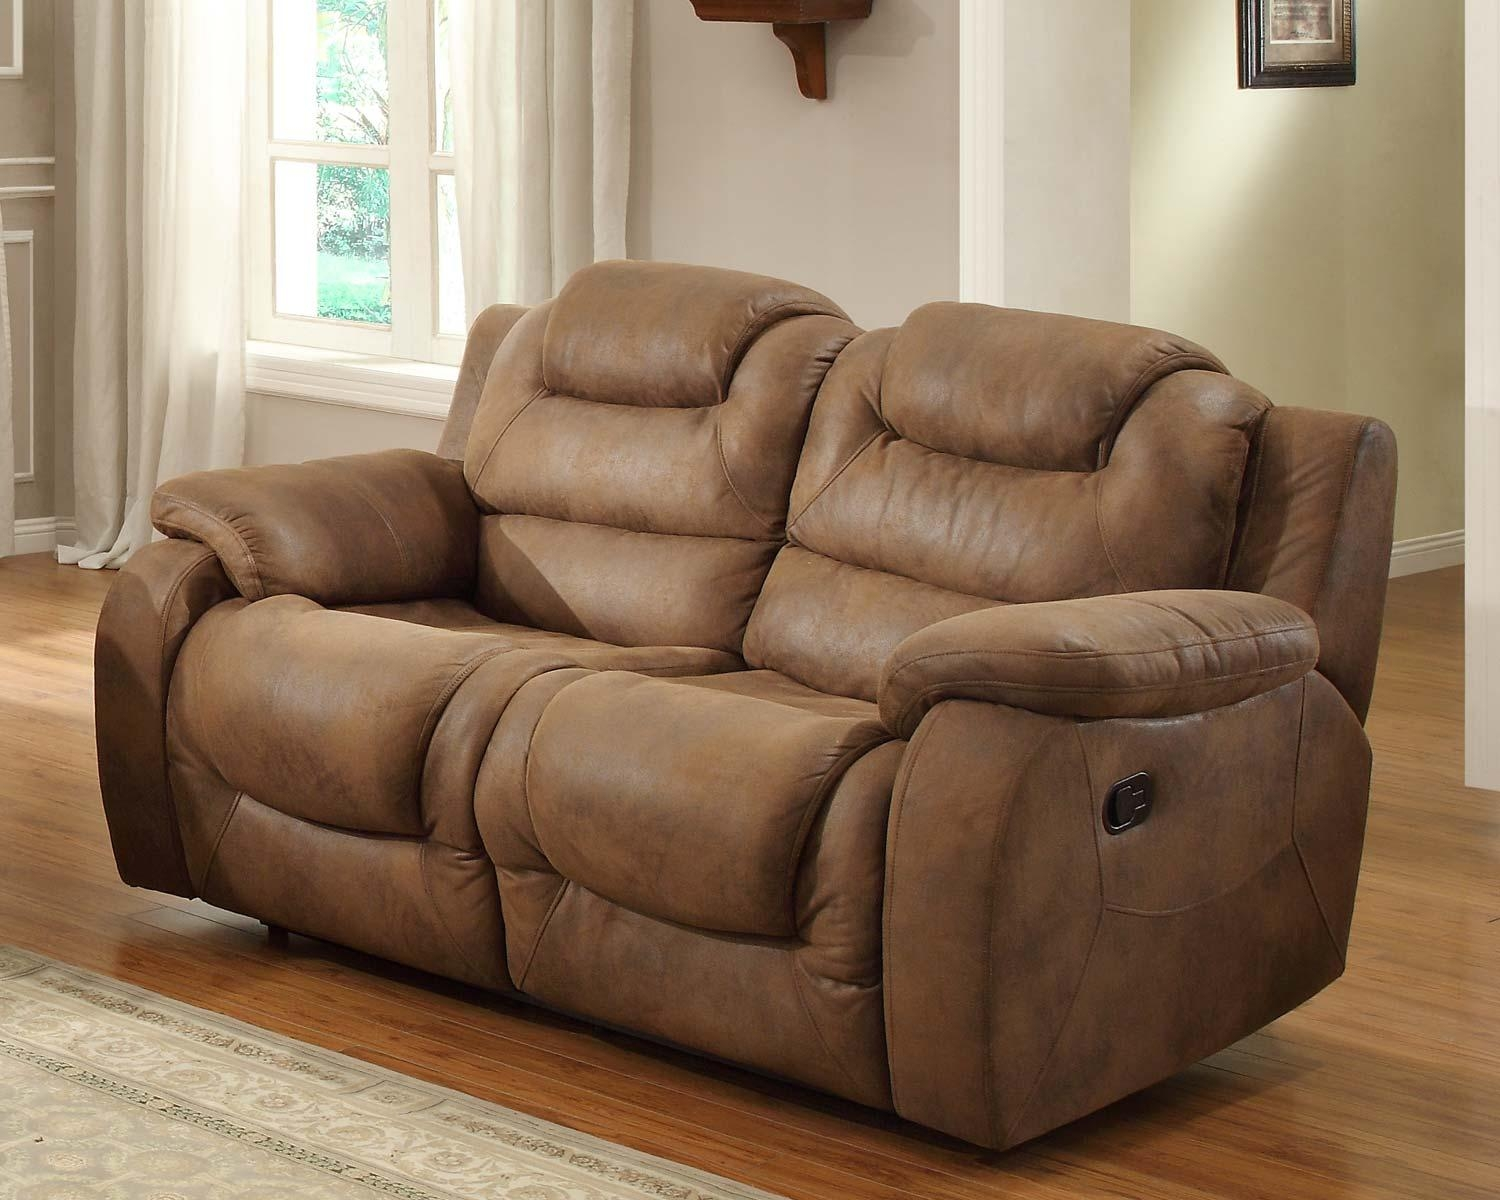 Sofas Center : Double Recliner Sofa Hoyt Reclining In Brown Bomber Inside Bomber Leather Sofas (Image 18 of 20)